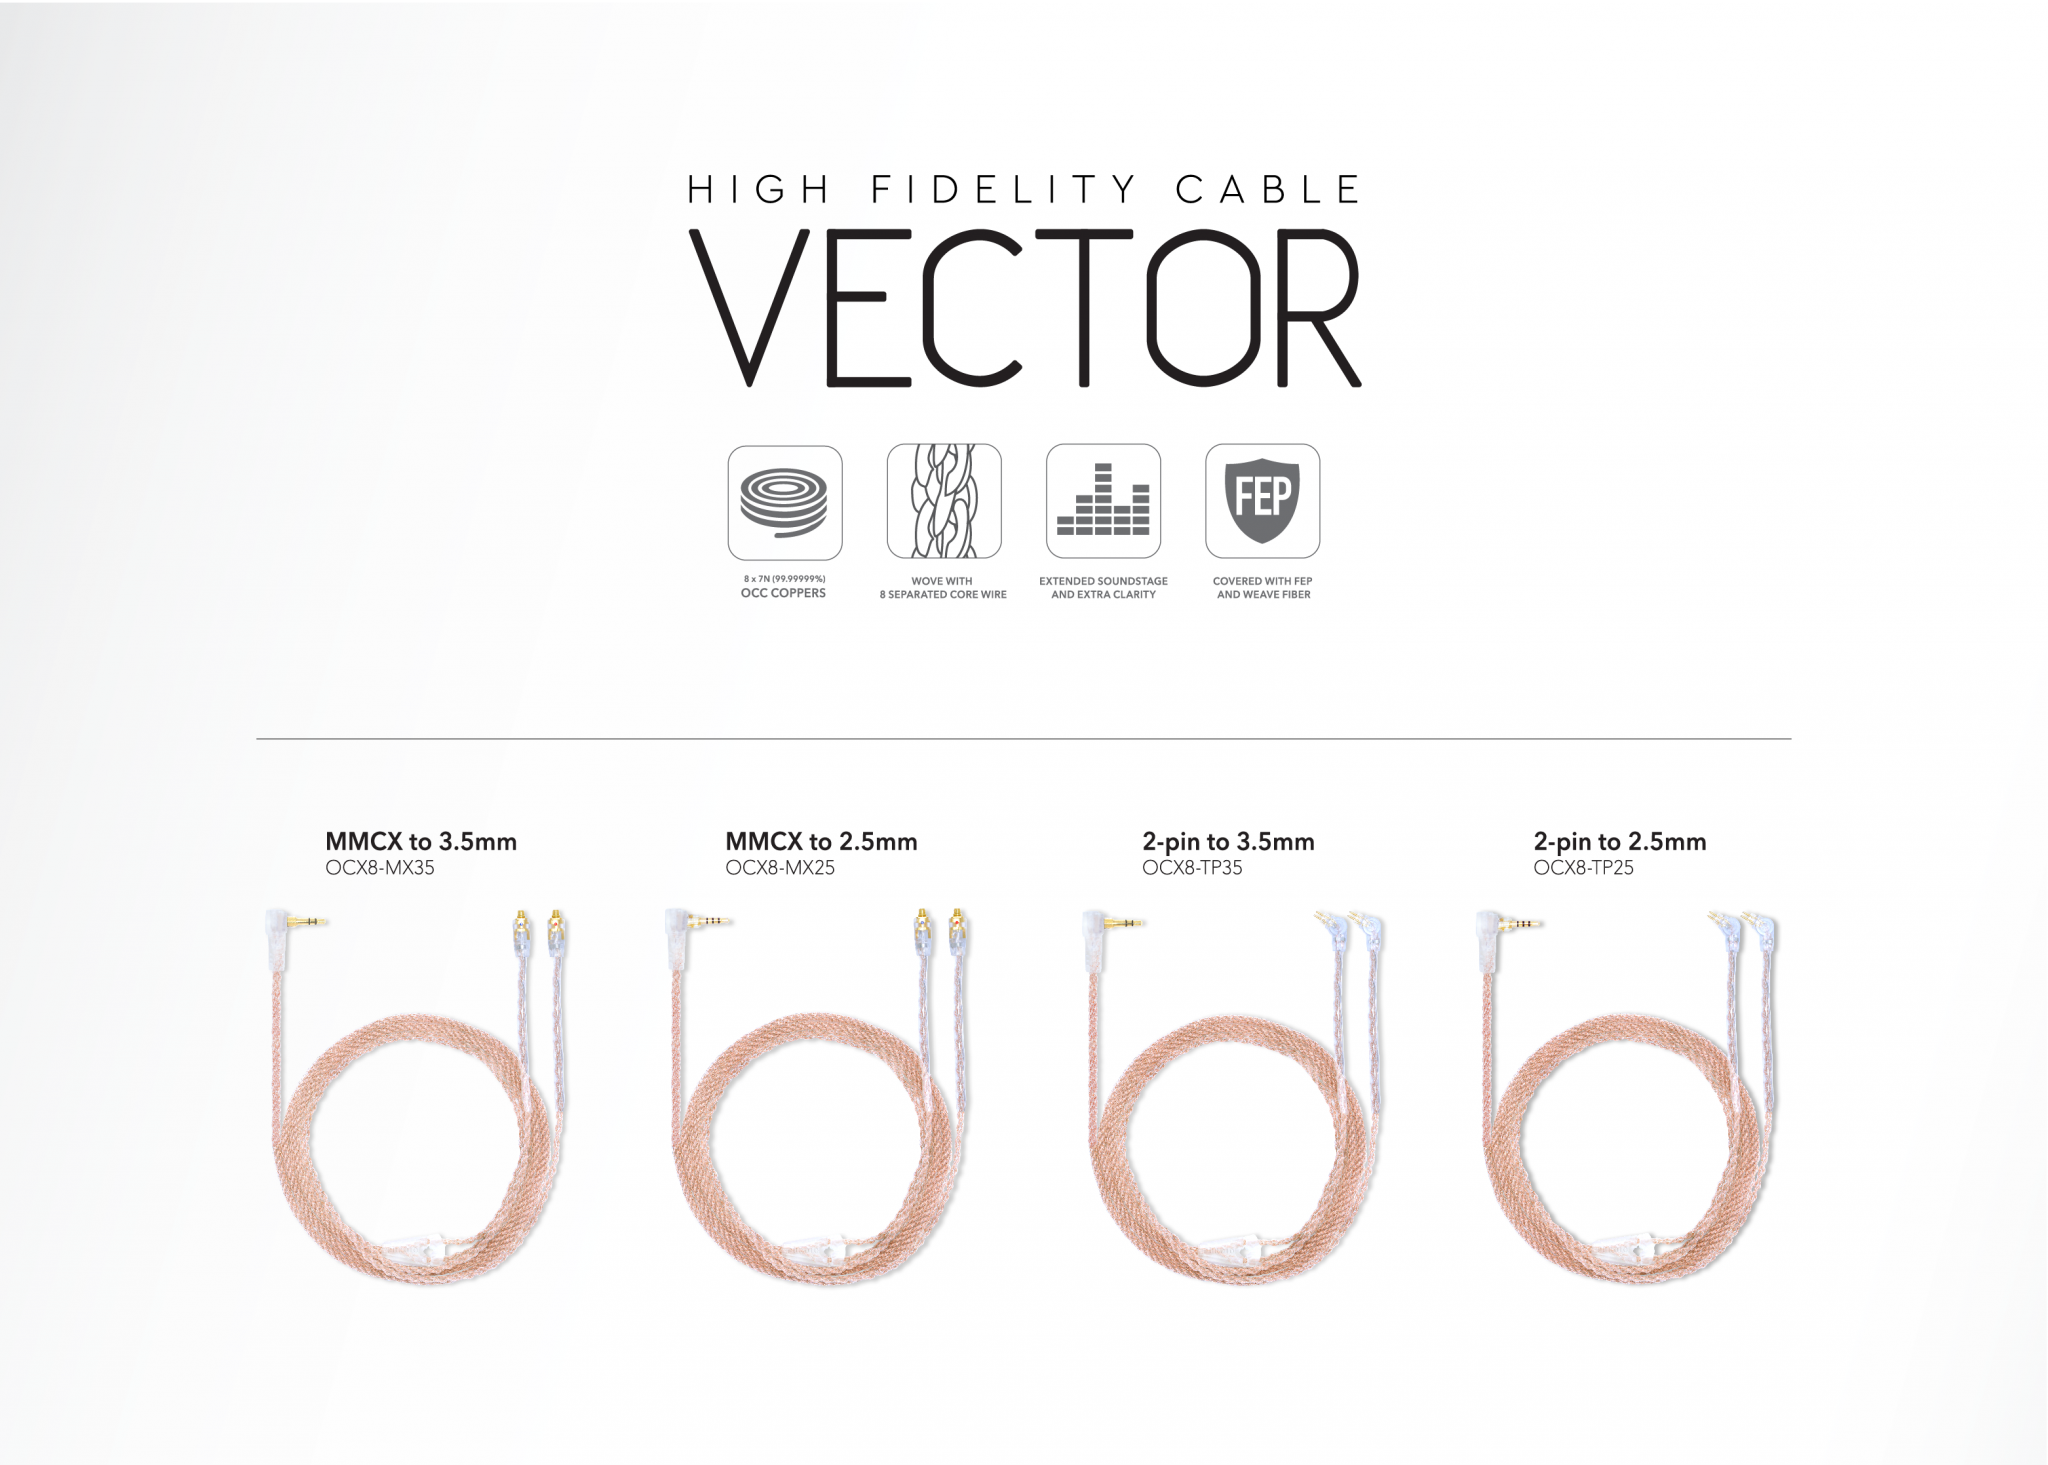 Purdio Vector High Fidelity Cable - 2 Pin to 3.5mm Stereo Plug, MMCX to 2.5mm Stereo Plug, MMCX to 3.5mm Stereo Plug, 2 Pin to 2.5mm Stereo Plug